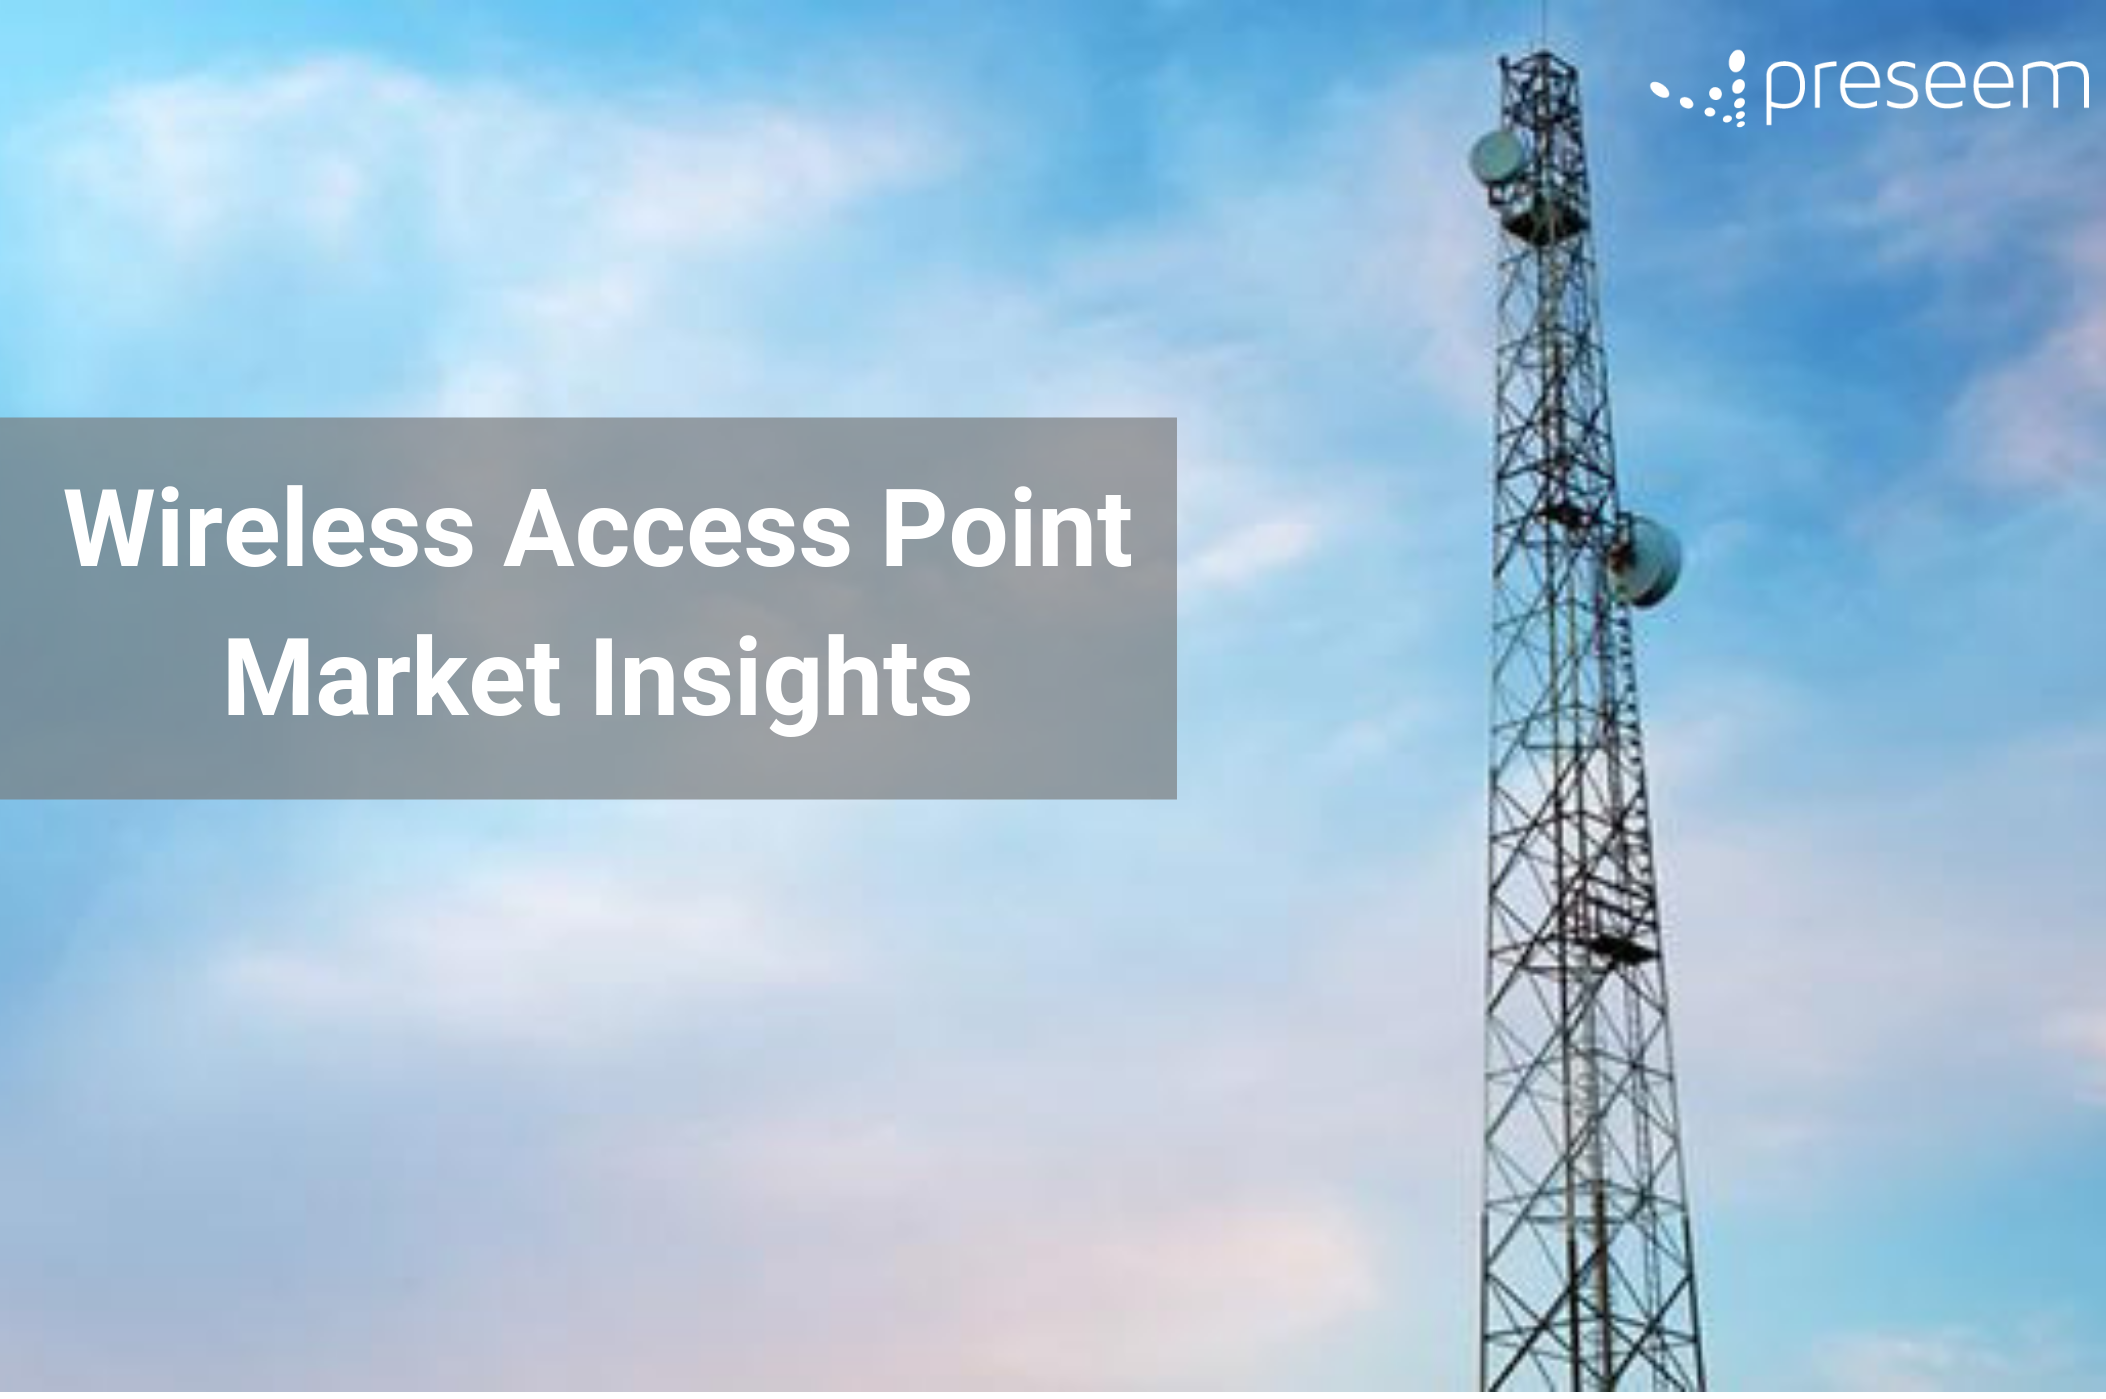 Wireless Access Point Market Insights